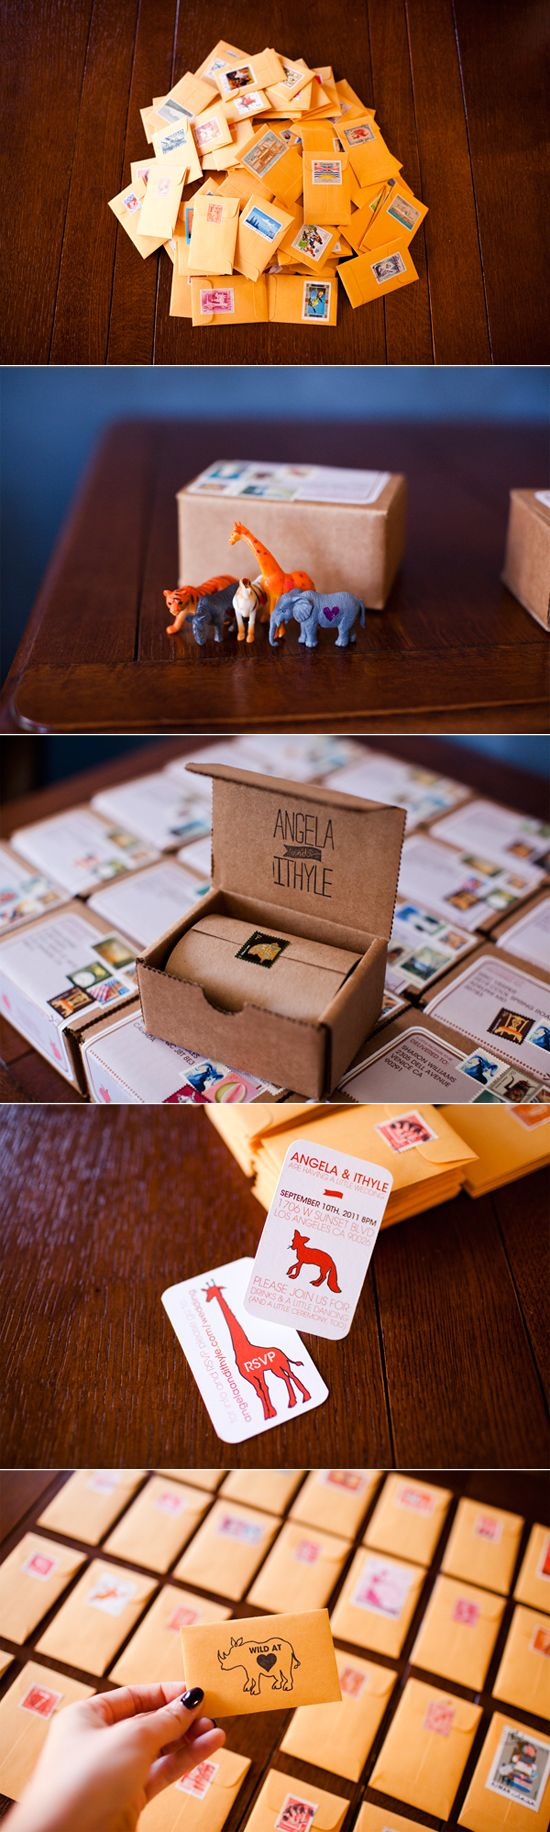 Creative Wedding Invites Idk Why But This Just Gave Me An Idea To